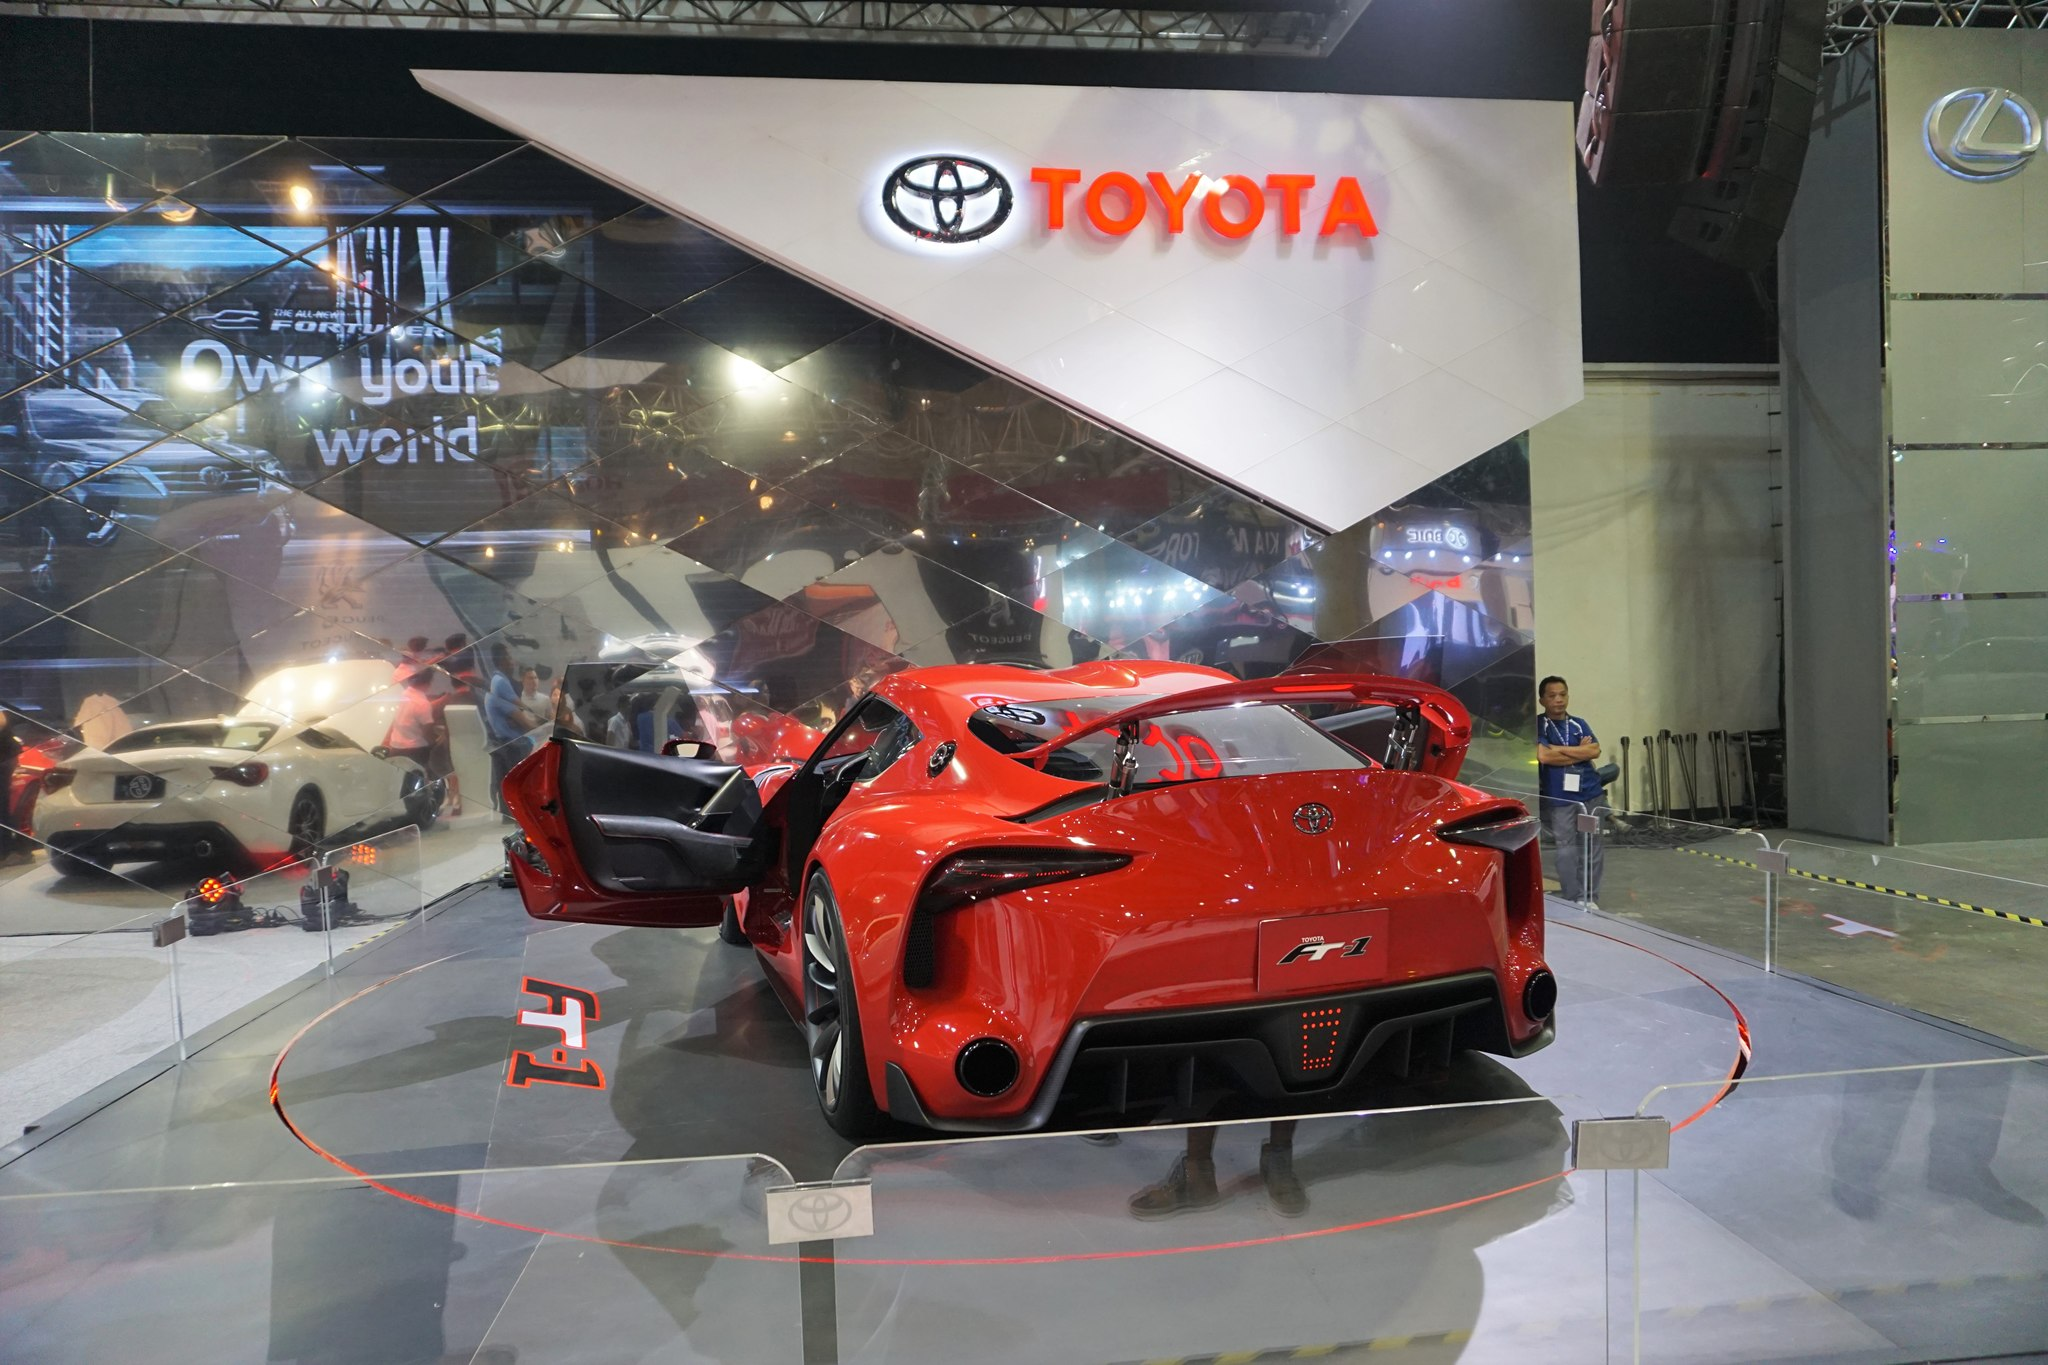 Awesome Toyota Ft 1 Concept Car At The Philippine